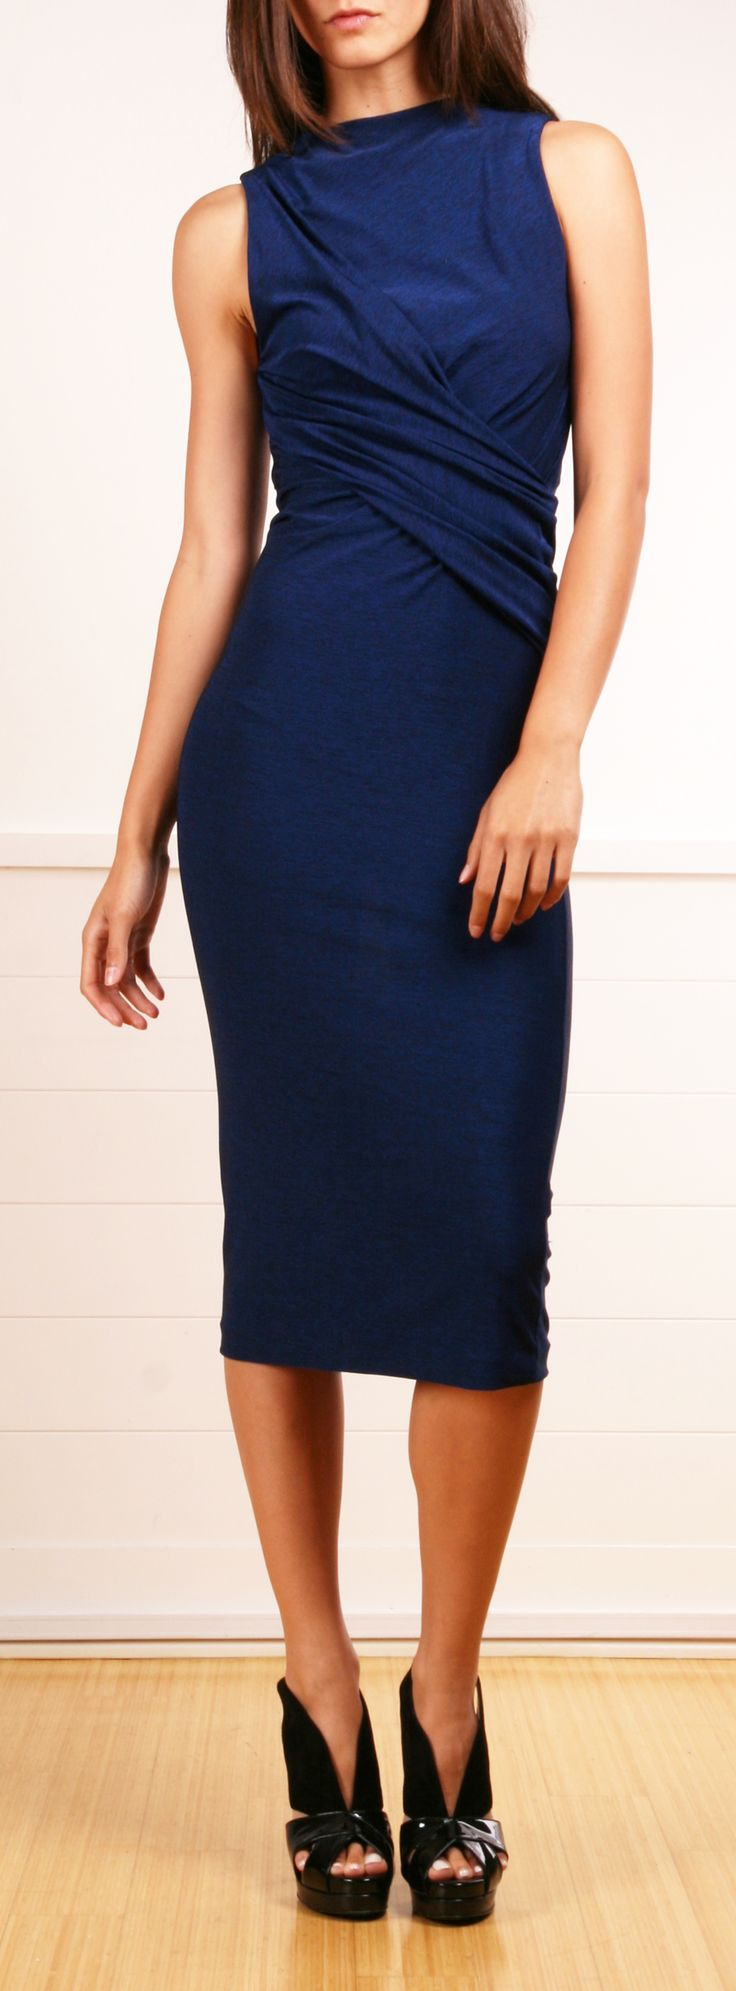 T BY ALEXANDER WANG DRESS @Michelle Coleman-Hers